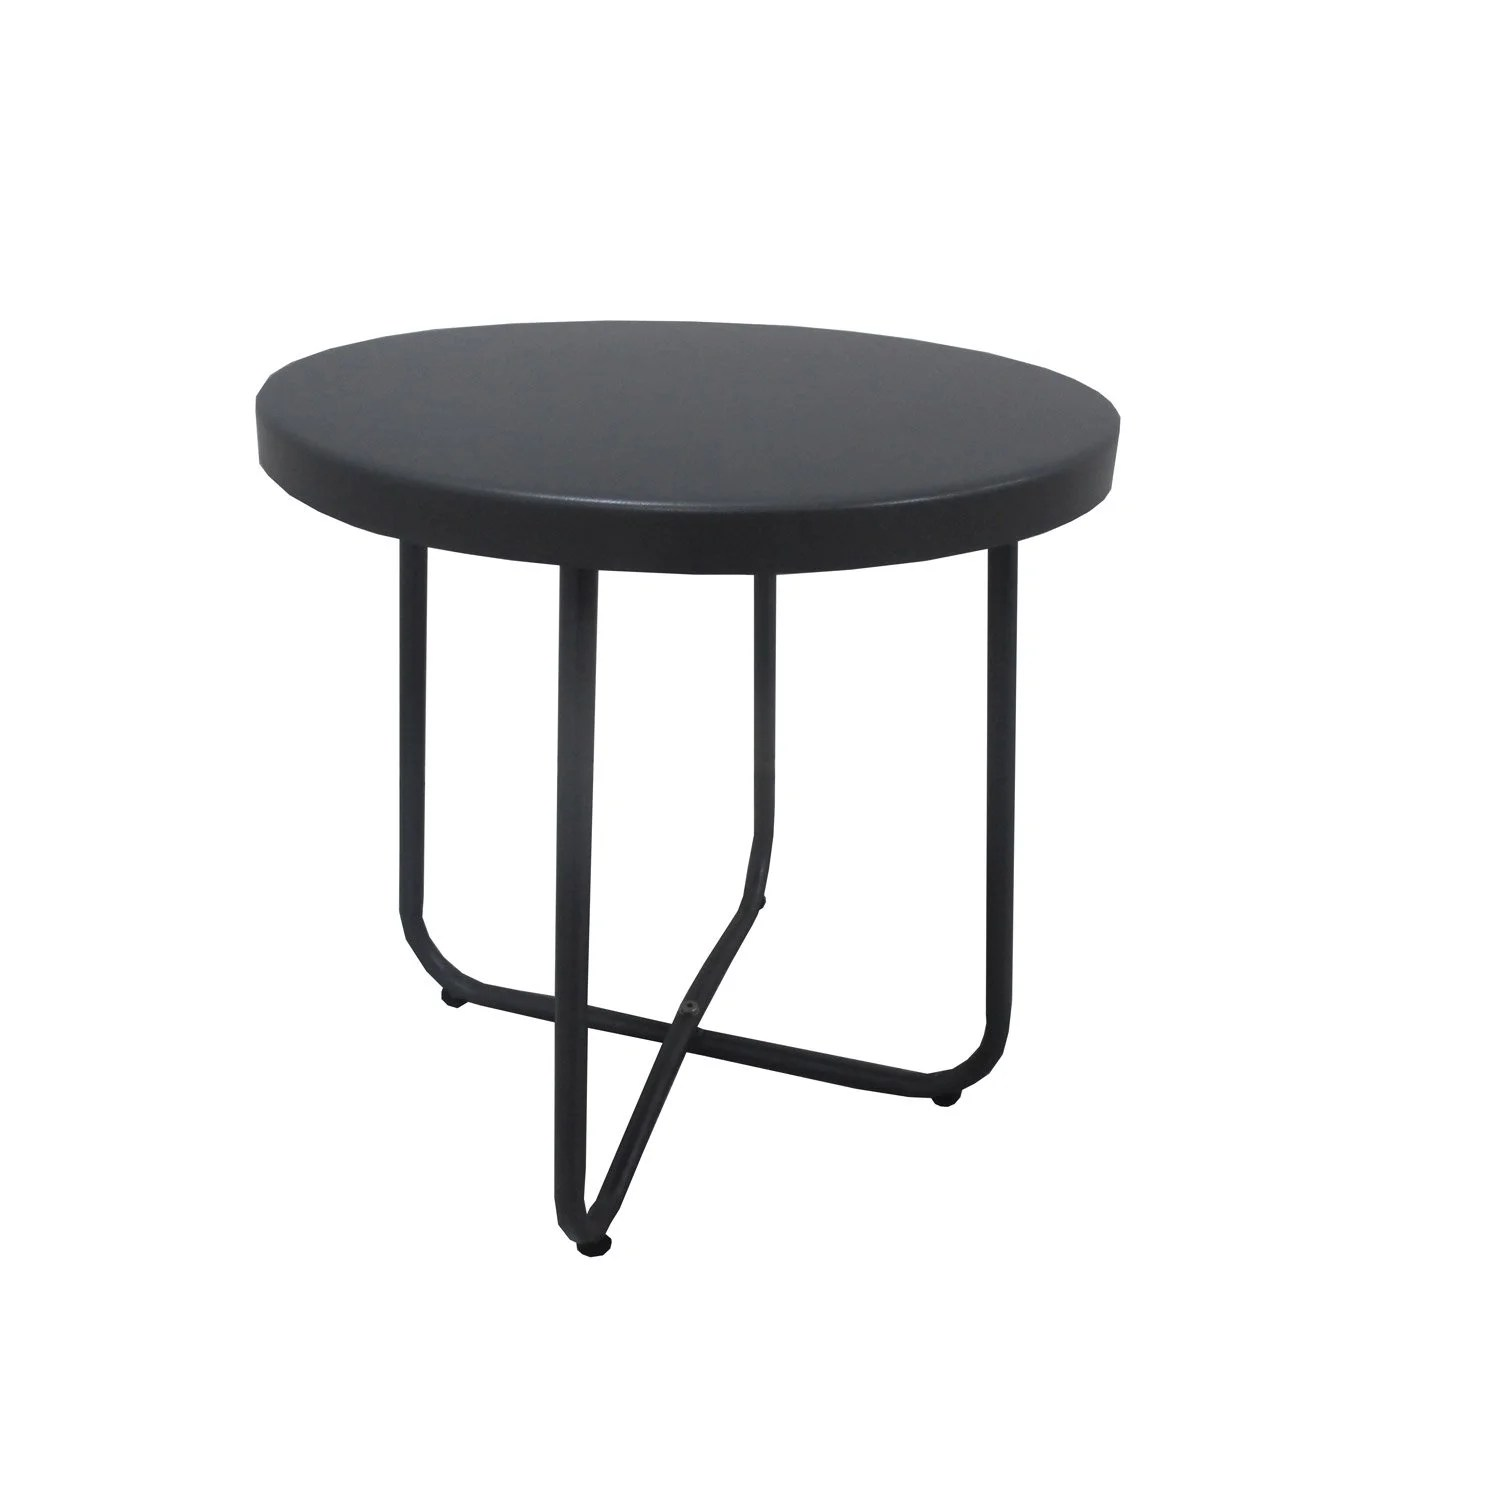 Table Exterieur 2 Personnes Table De Jardin Bombay Ronde Anthracite 2 Personnes